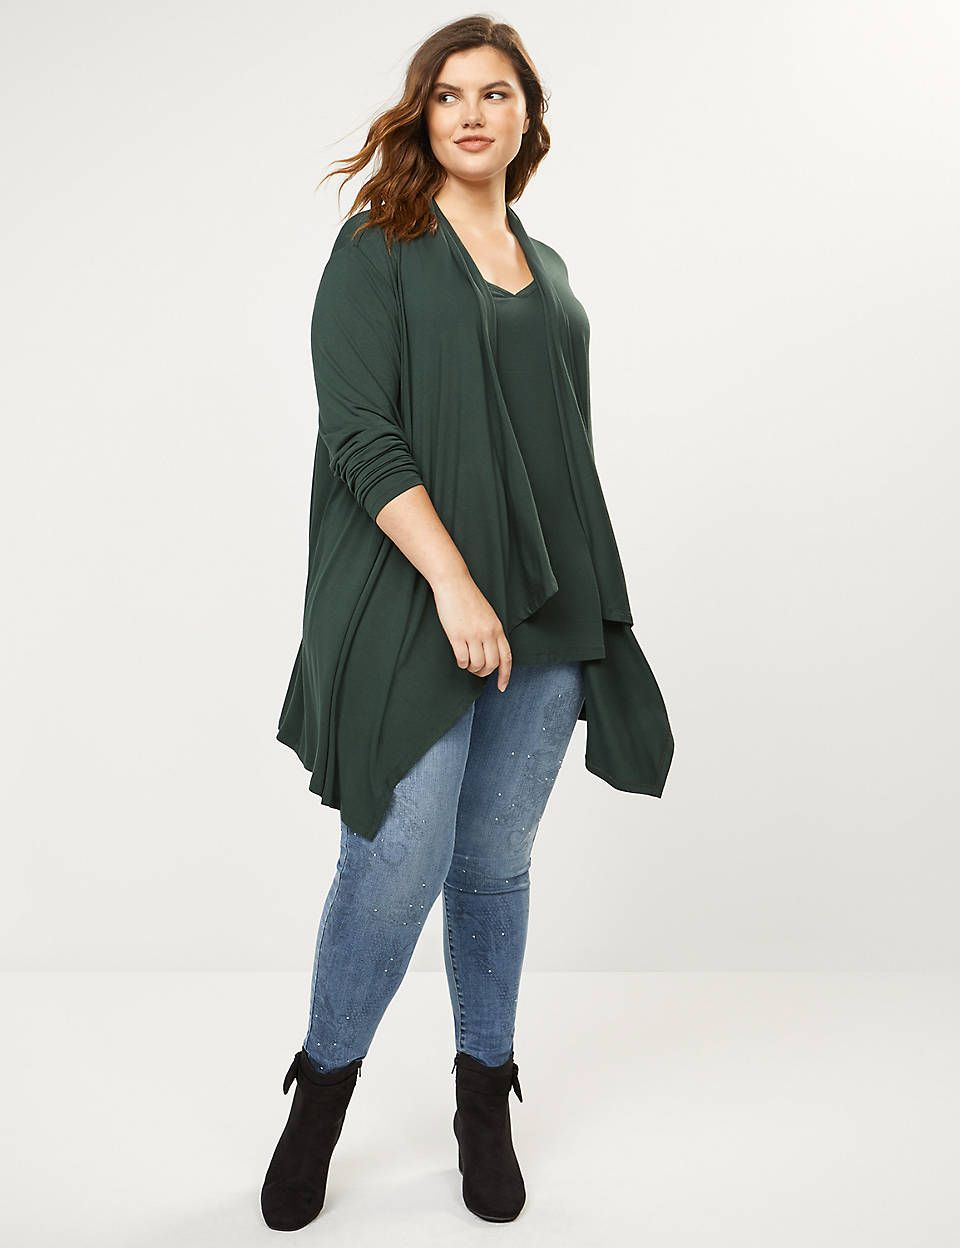 Lane Bryant Drape Front Overpiece In 2020 Plus Size Outfits Plus Size Casual Fashion